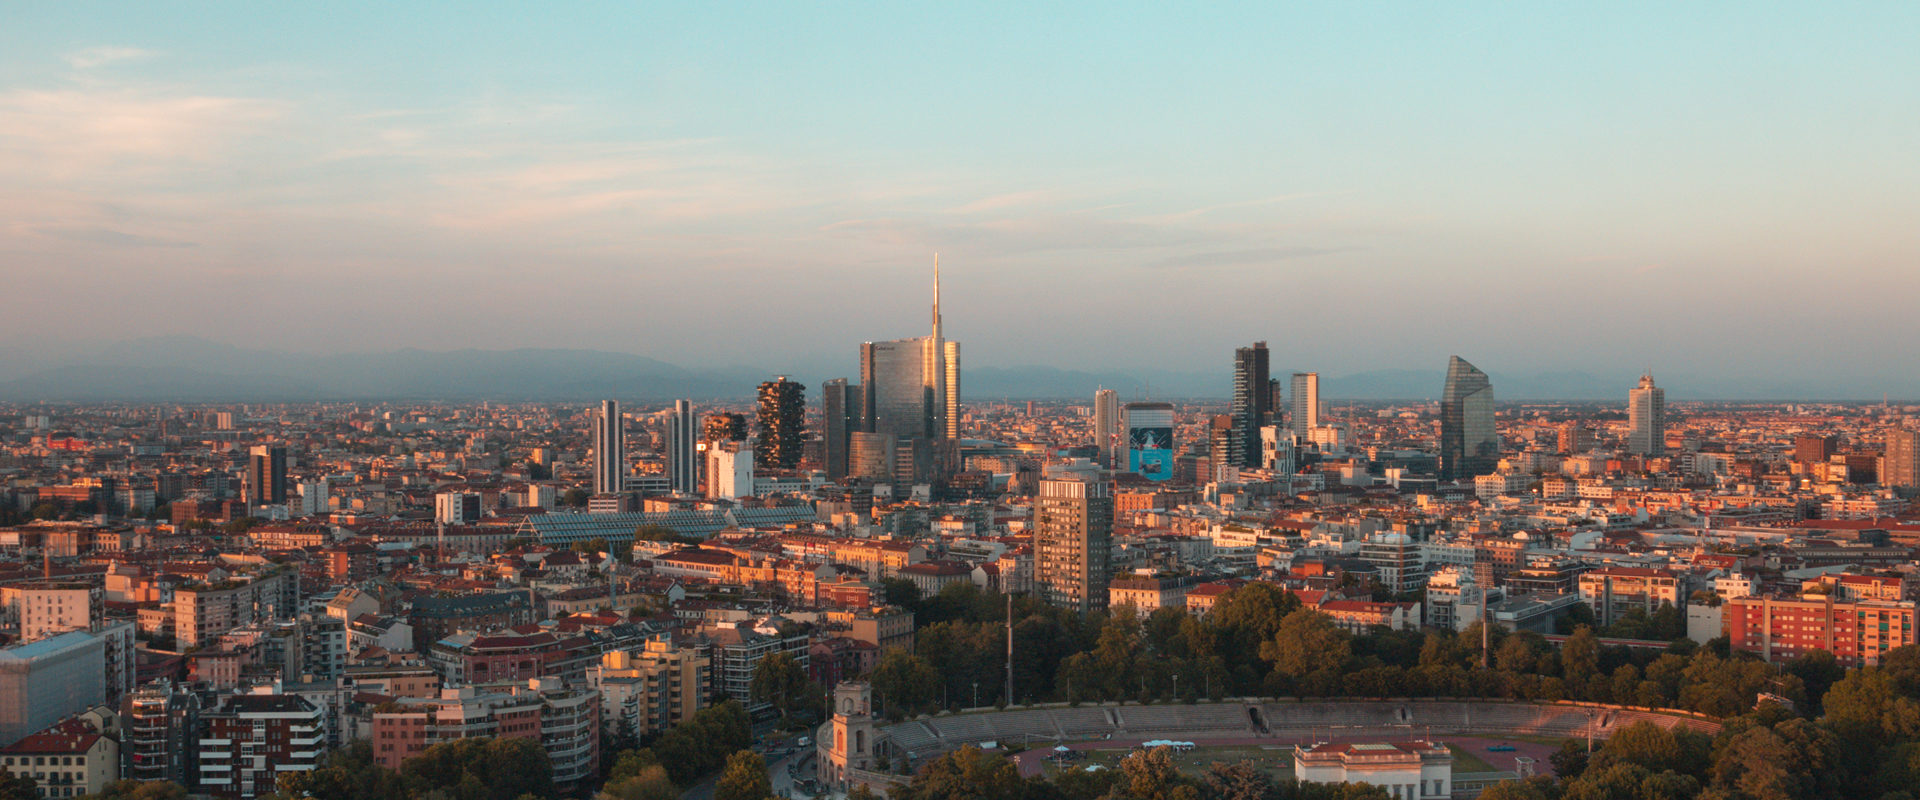 The golden hour in Milan